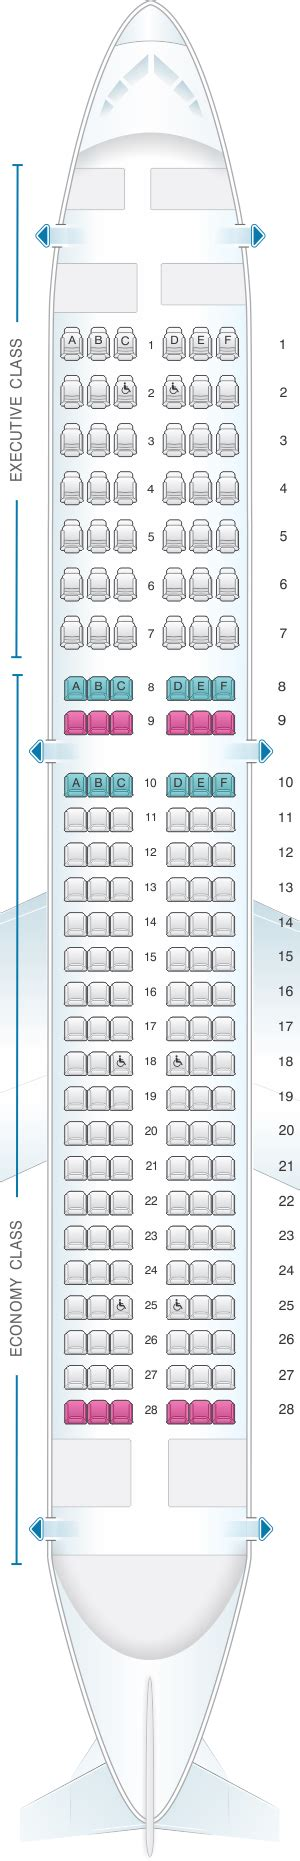 airbus a320 sieges plan de cabine tap portugal airbus a320 seatmaestro fr